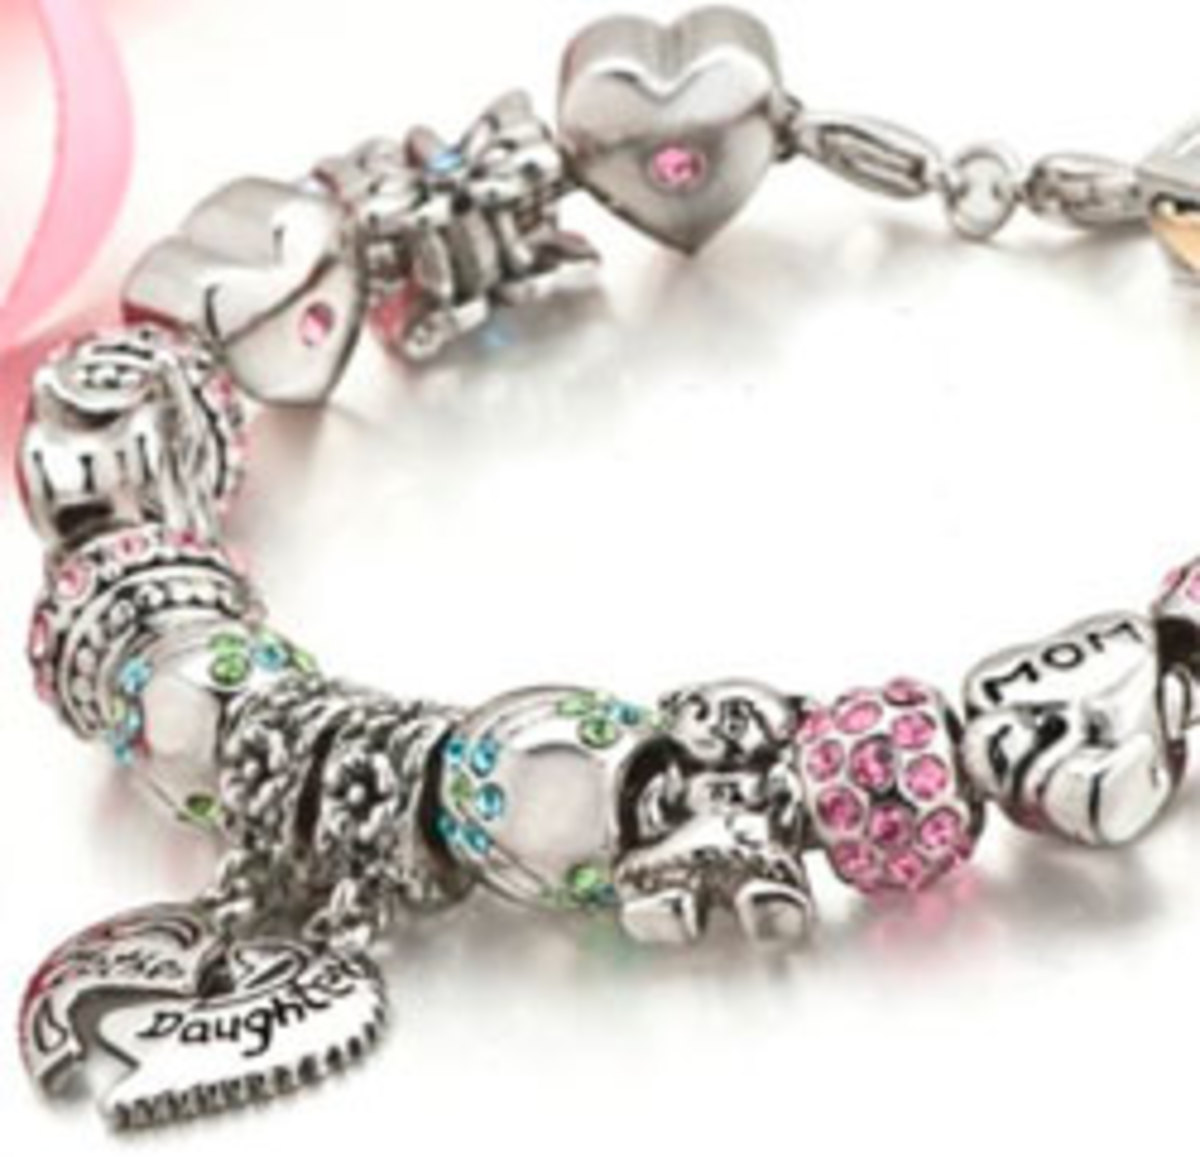 Pandora charms can be used to mark milestones through life's journey.